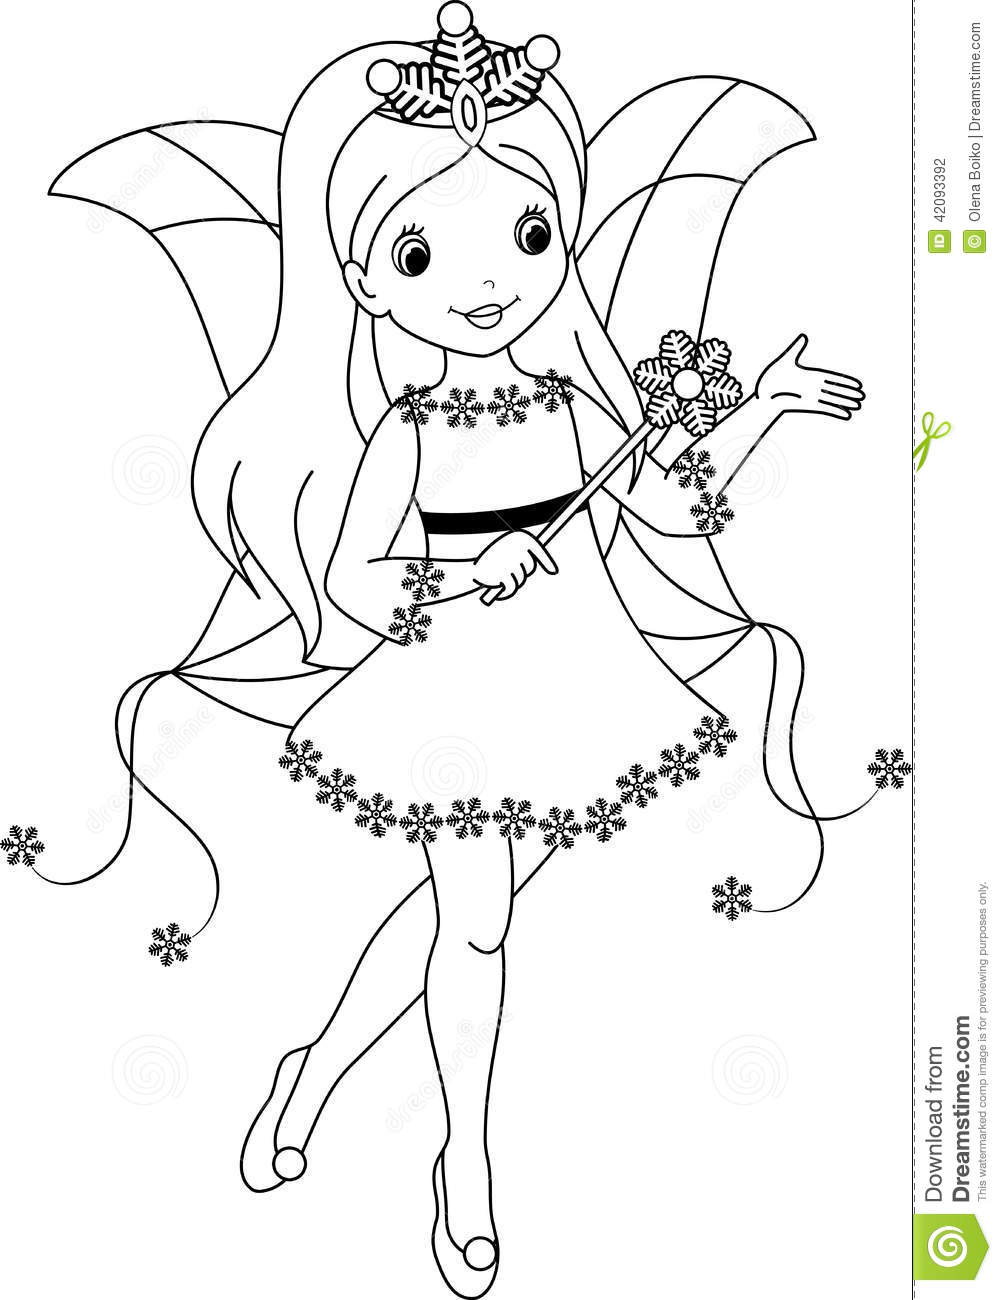 Dear Tooth Fairy | Fairy coloring pages, Fairy coloring, Tooth fairy | 1300x1002